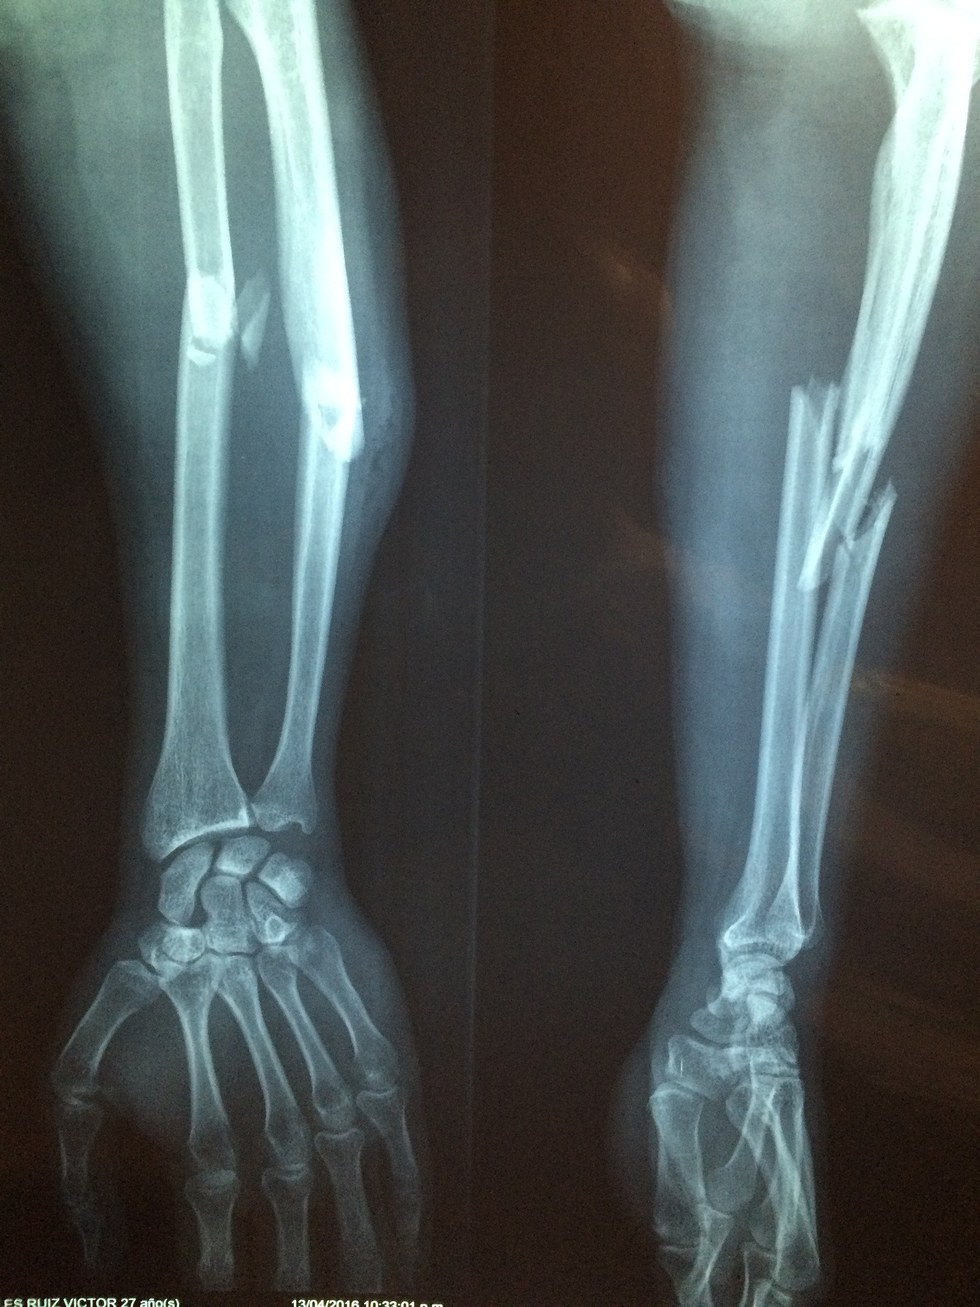 Broken Bone Or Bone Fracture Law Offices Of Bradley L Sorrentino